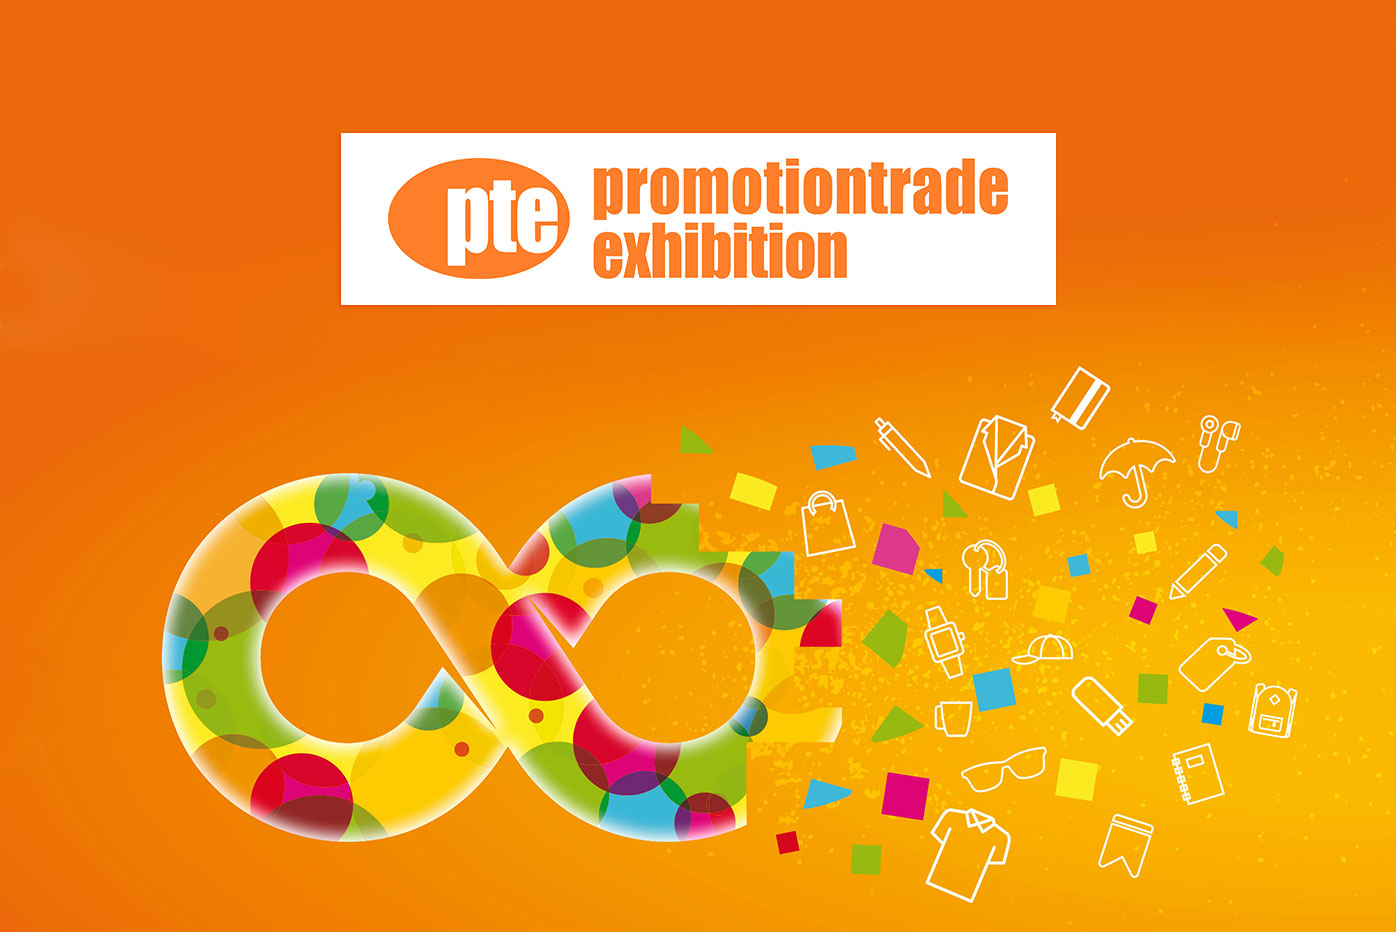 PTE – PROMOTIONAL TRADE EXHIBITION